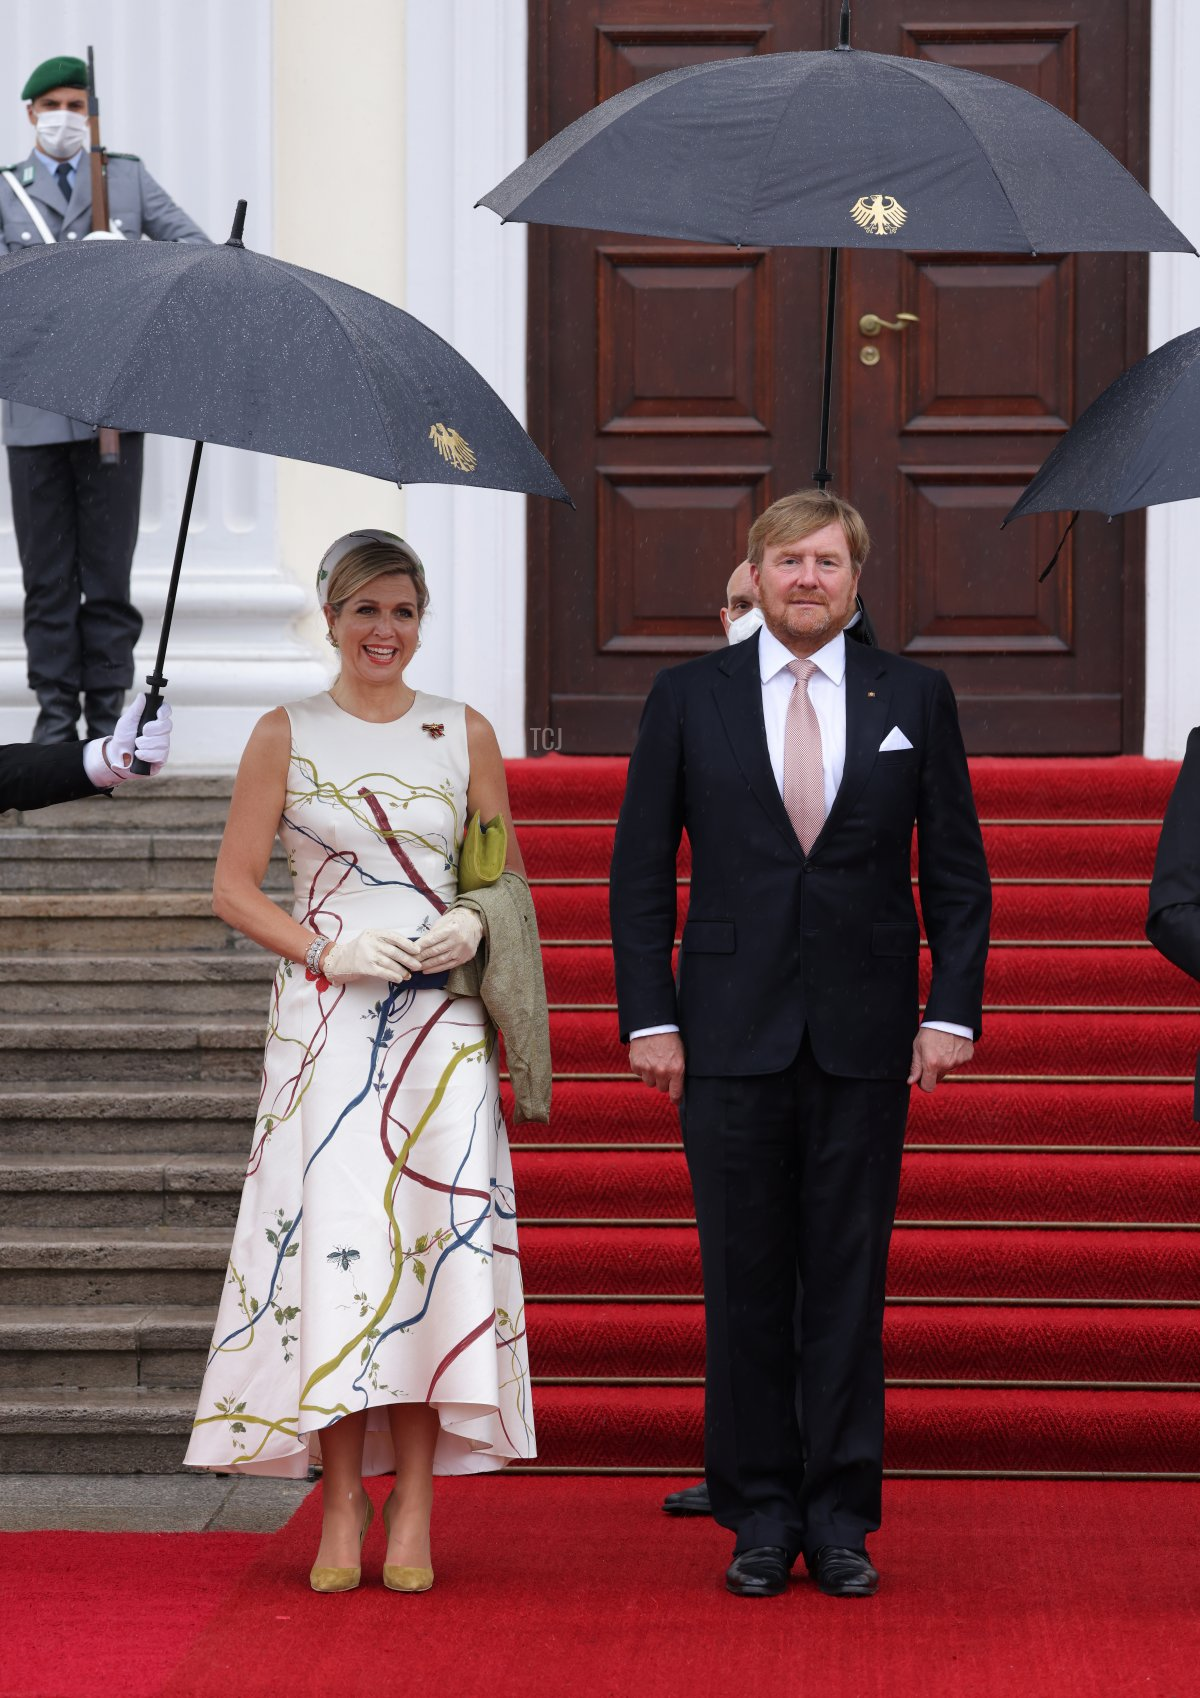 King Willem-Alexander and Queen Maxima of the Netherlands arrive at Castle Bellevue on July 05, 2021 in Berlin, Germany